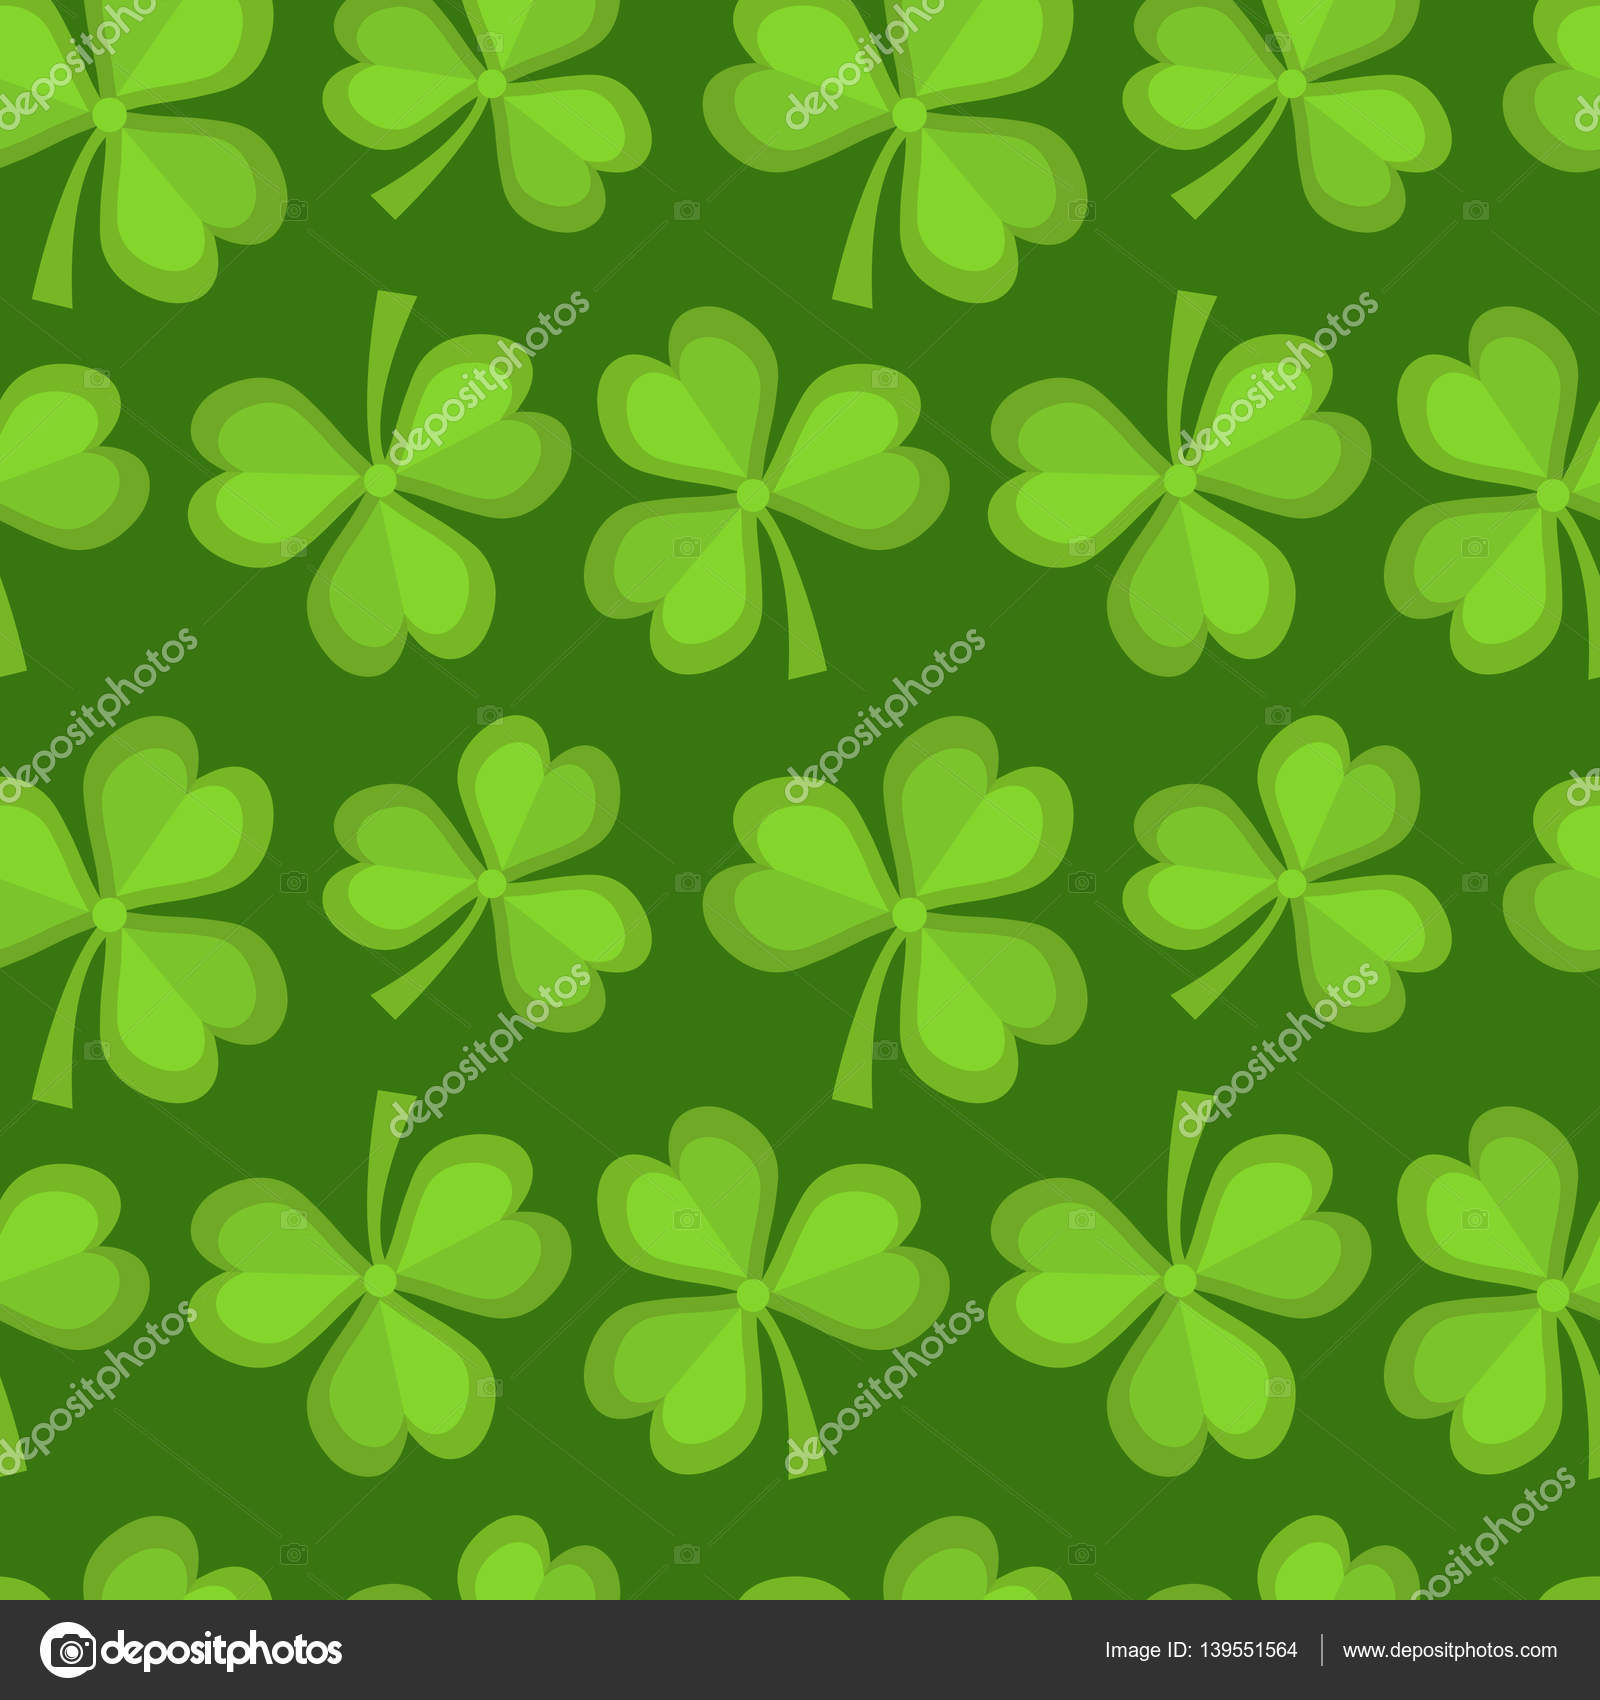 Clover Seamless Pattern St Patricks Day Endless Repeated